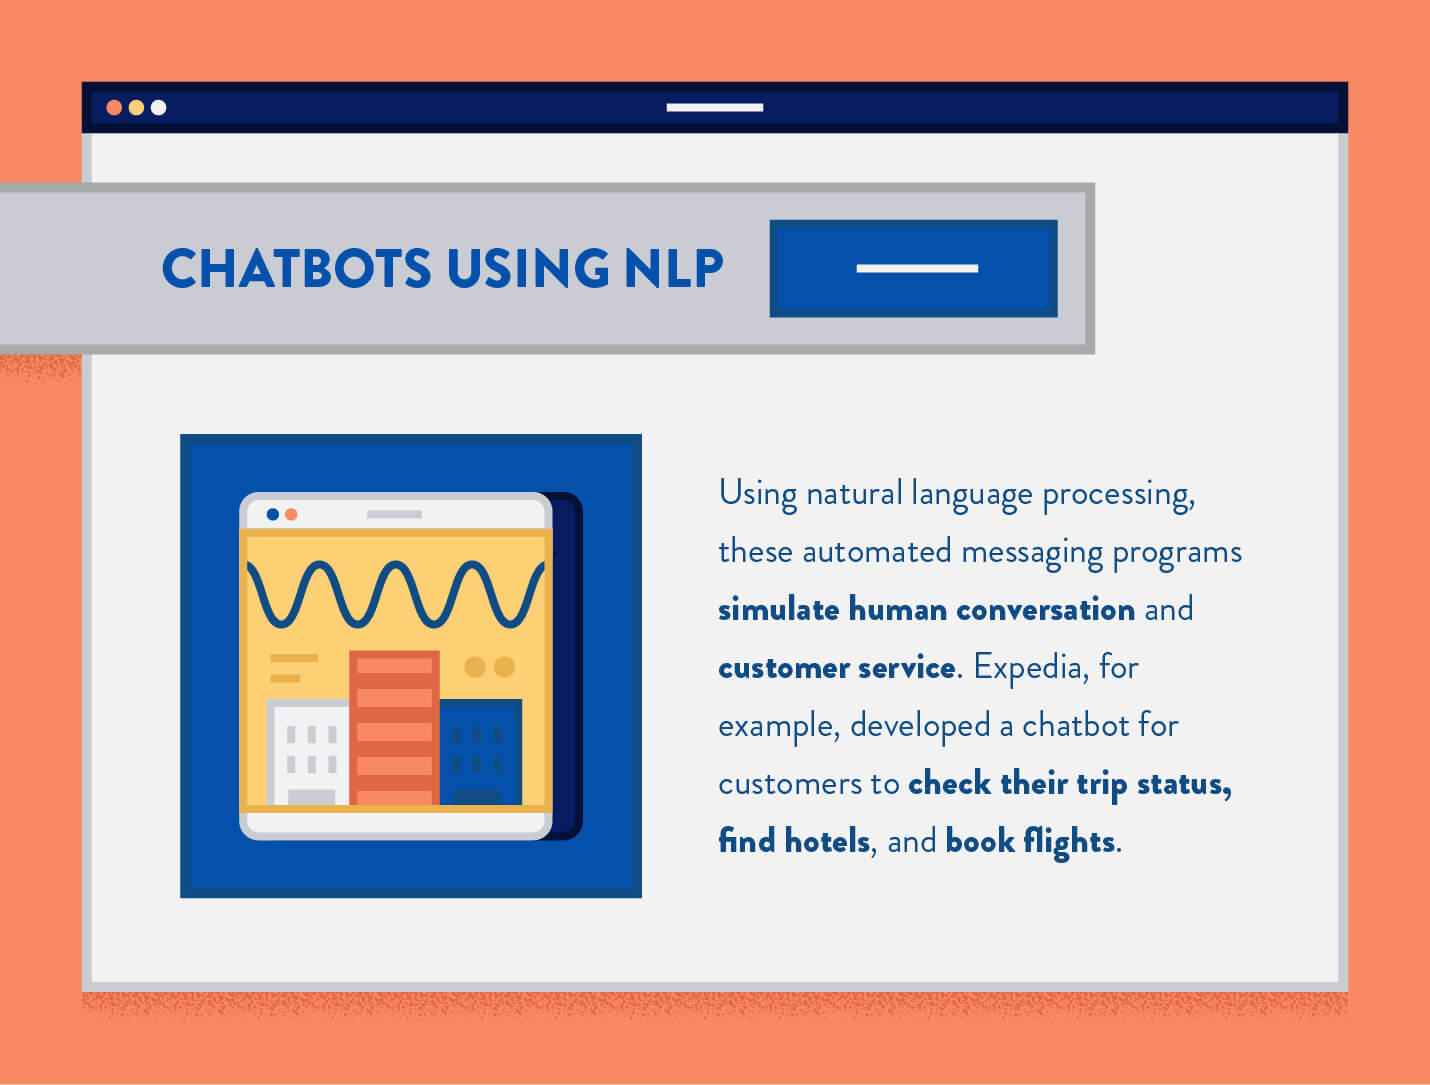 how NLP is being used by chatbots from example expedia